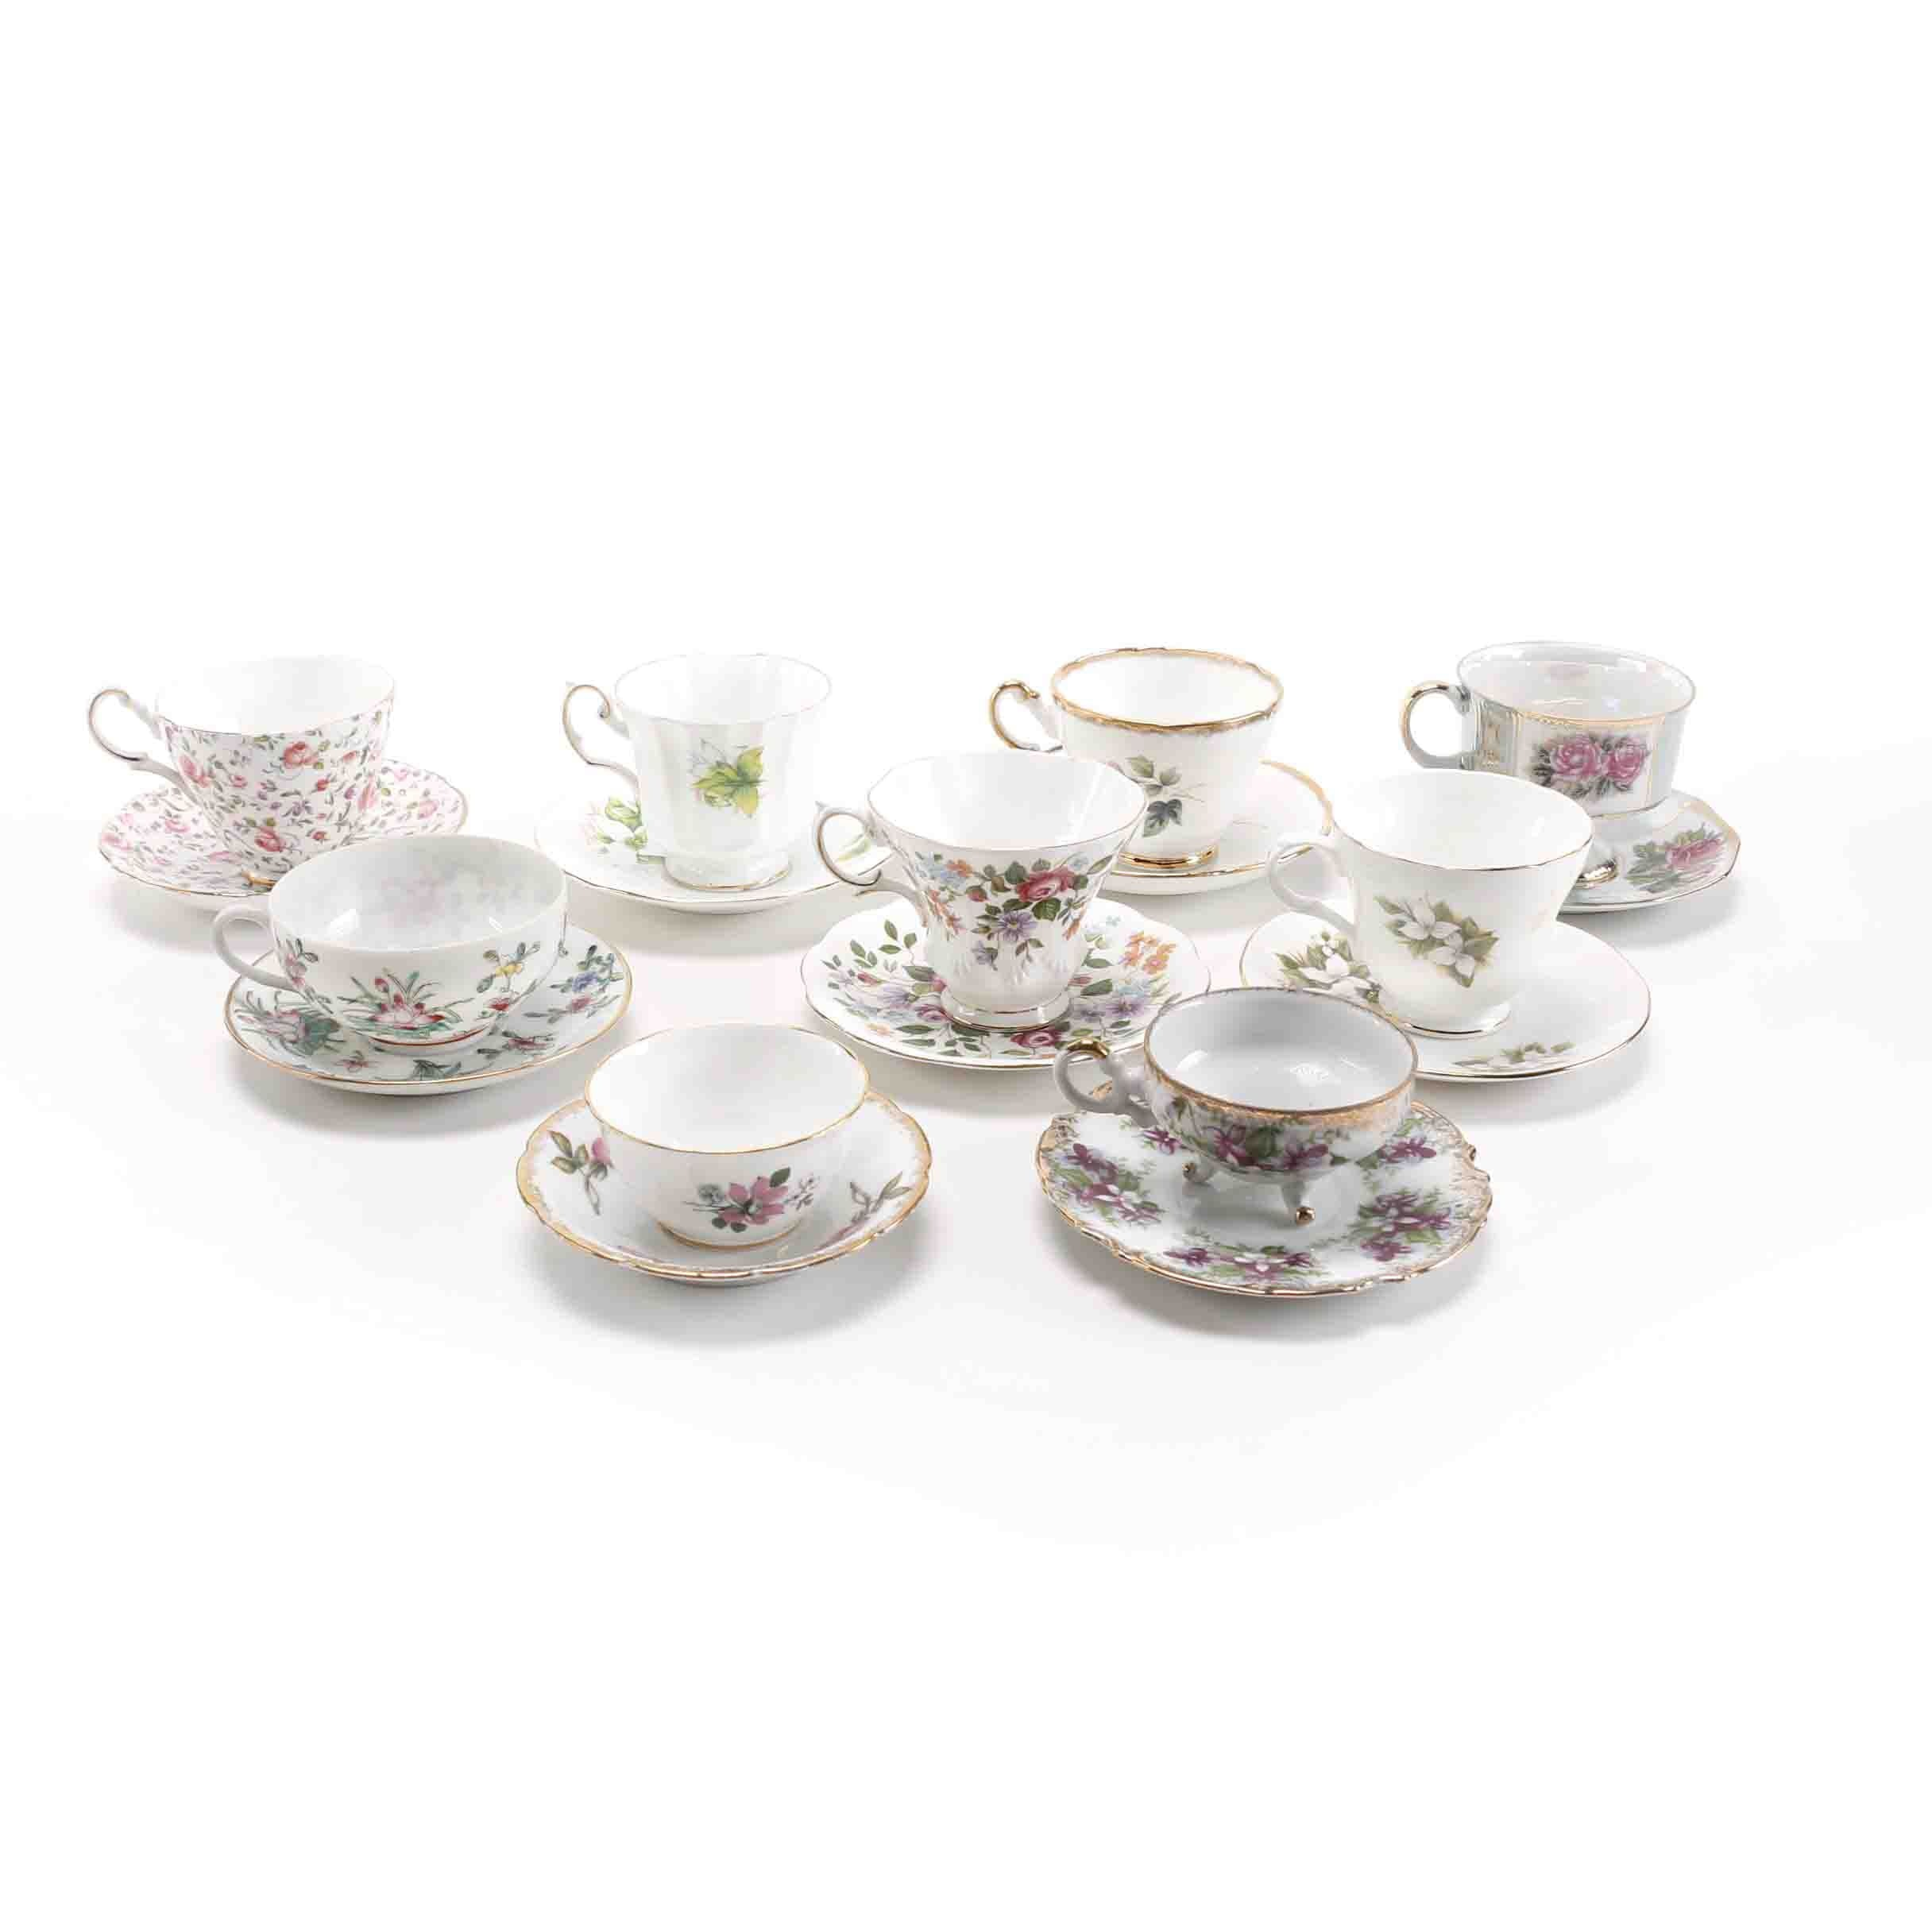 Collection of Floral Themed Cups And Saucers